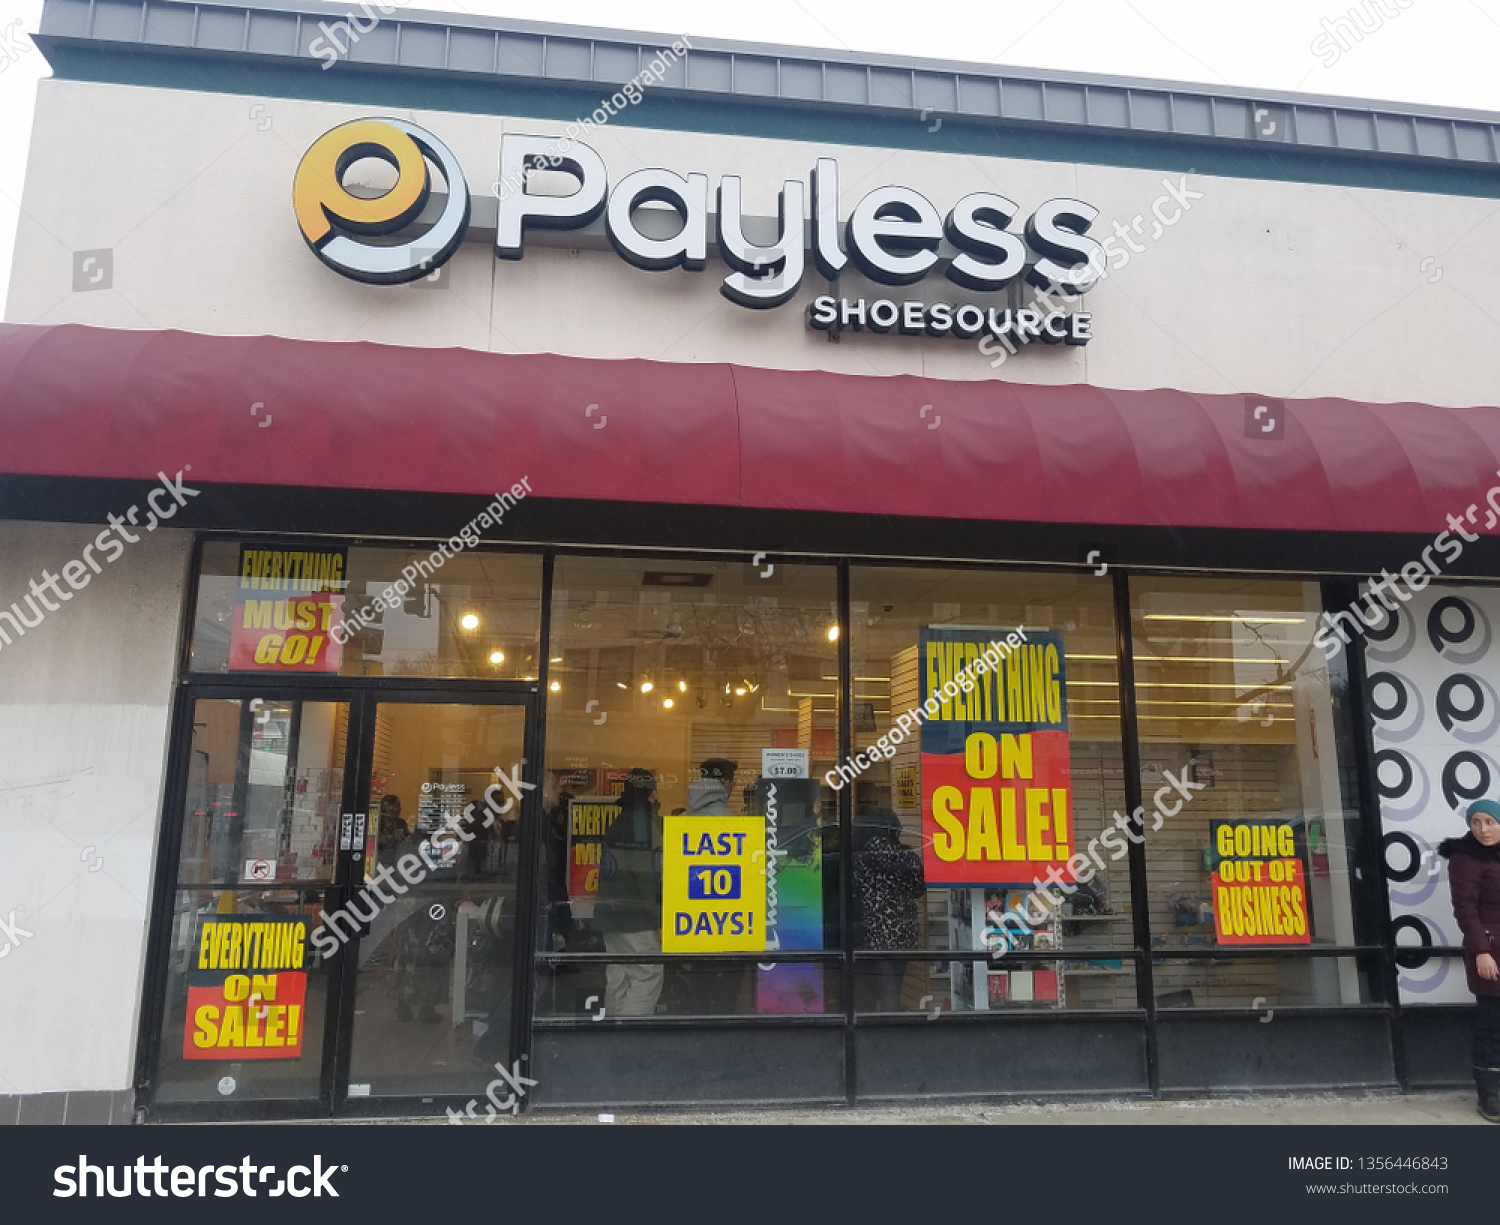 Payless Shoesource Front Entrance Sign